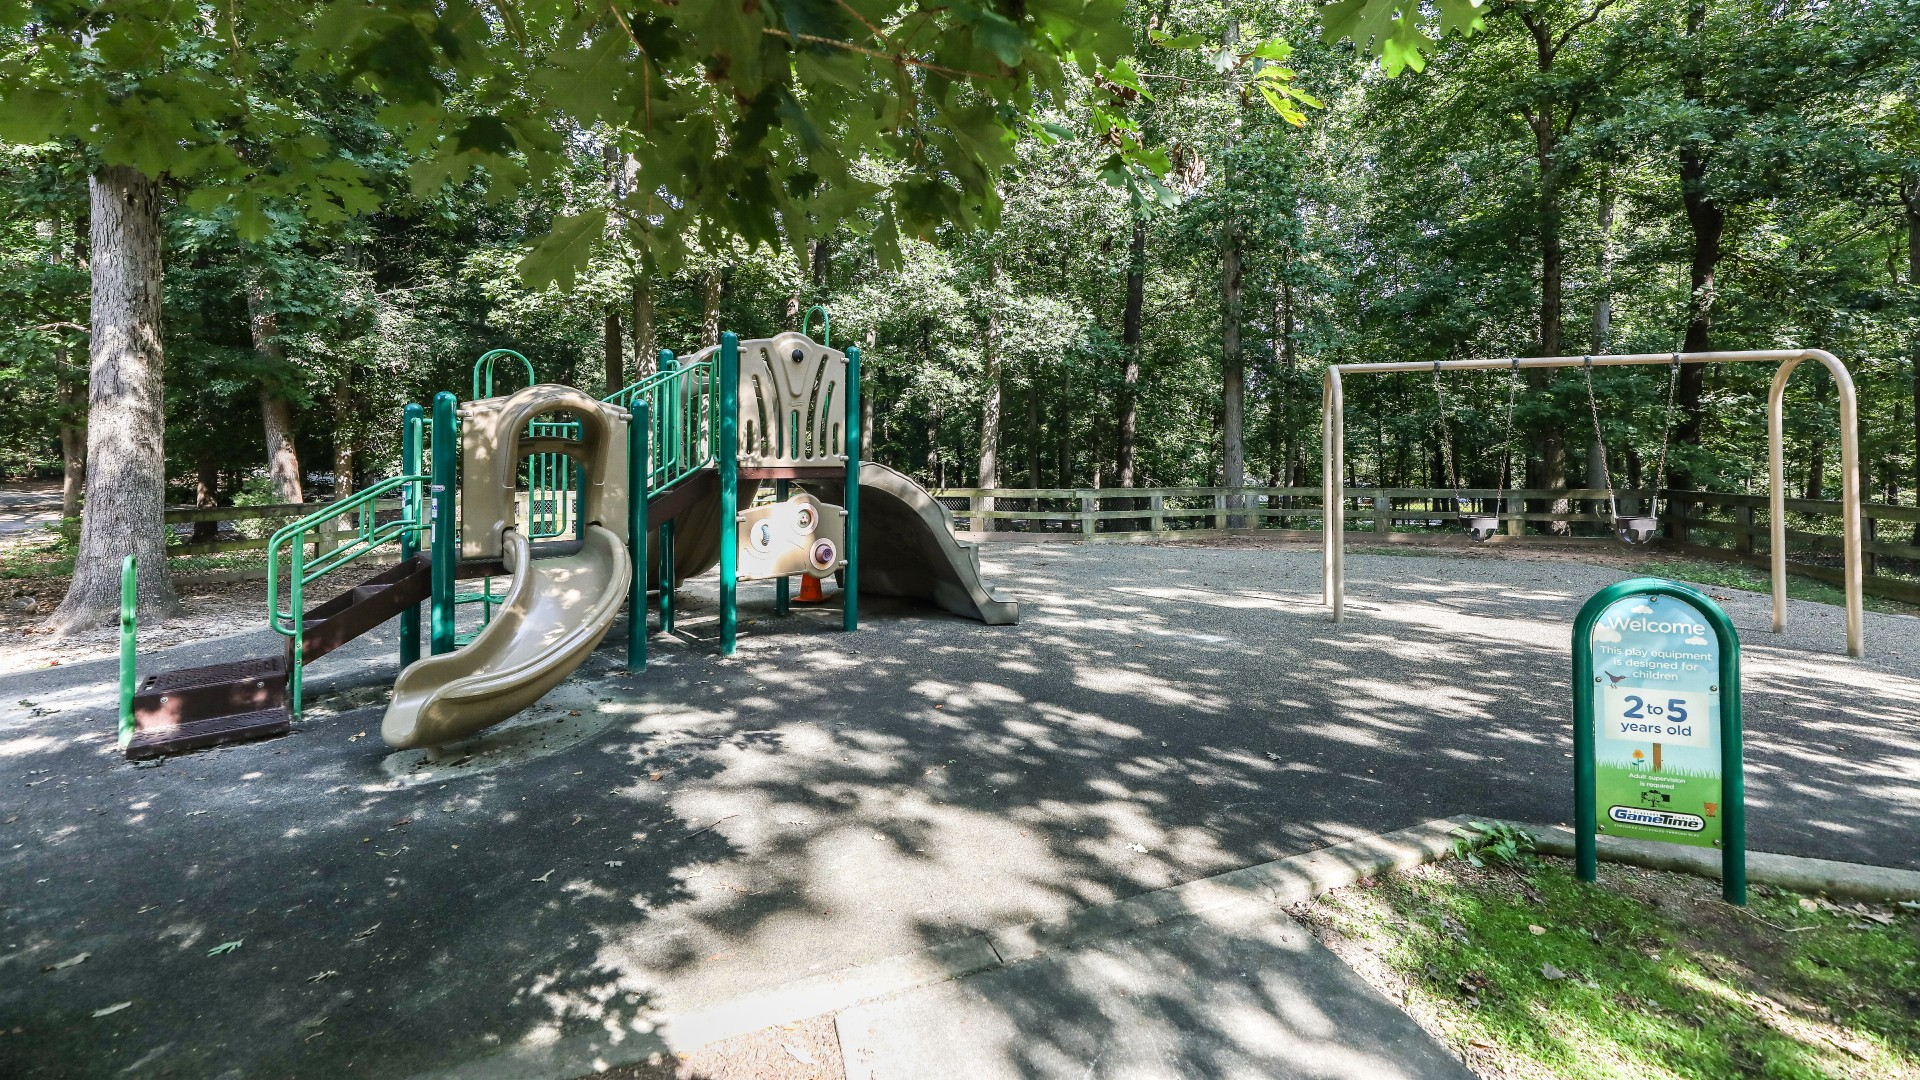 A smaller playground for younger kids with a slides, swings and more